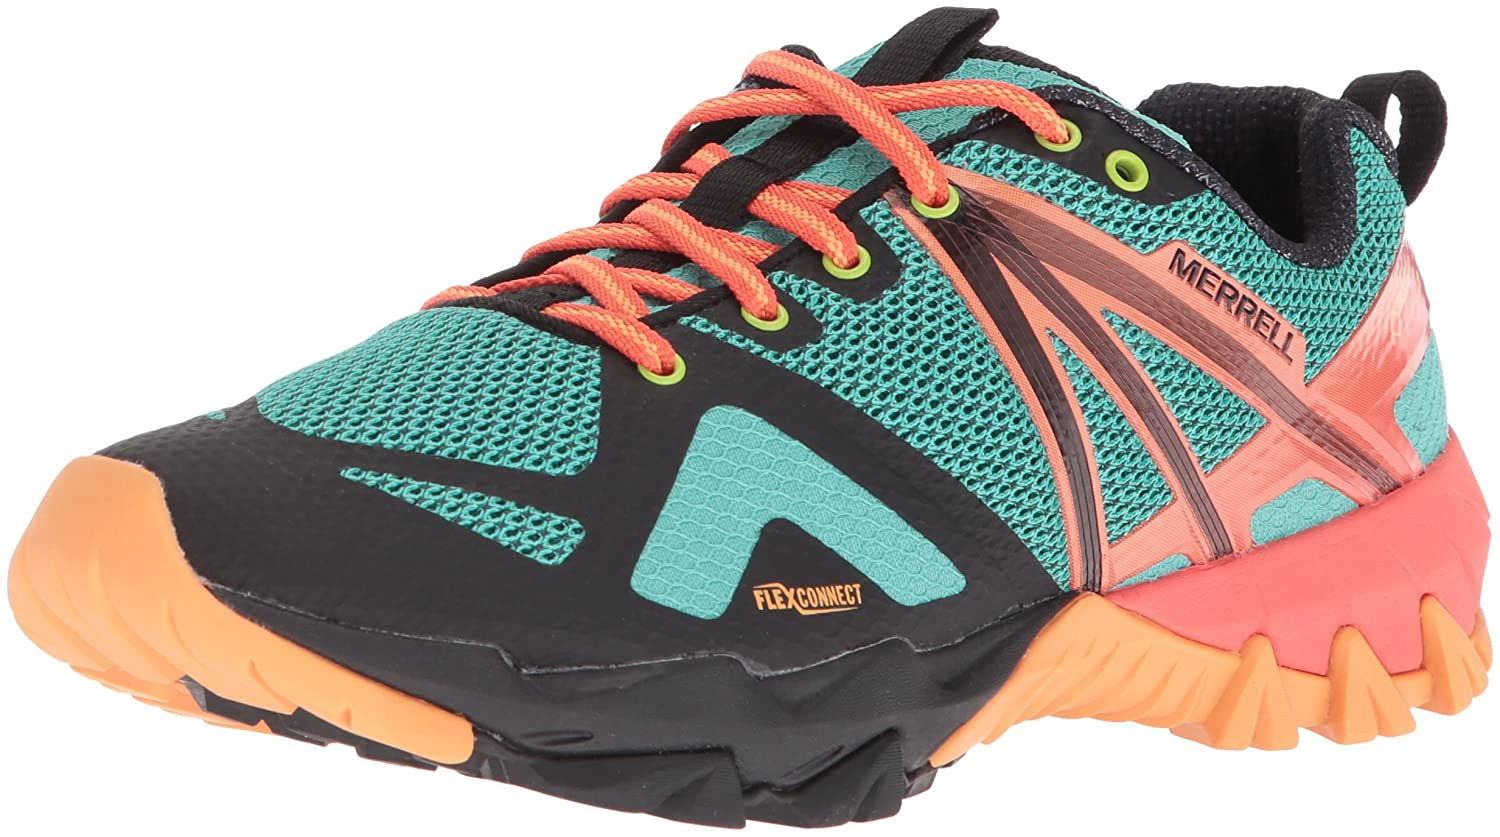 Merrell レディース MQM FLex Gore-Tex B071Z939FB フルーツパンチ 5 Medium US